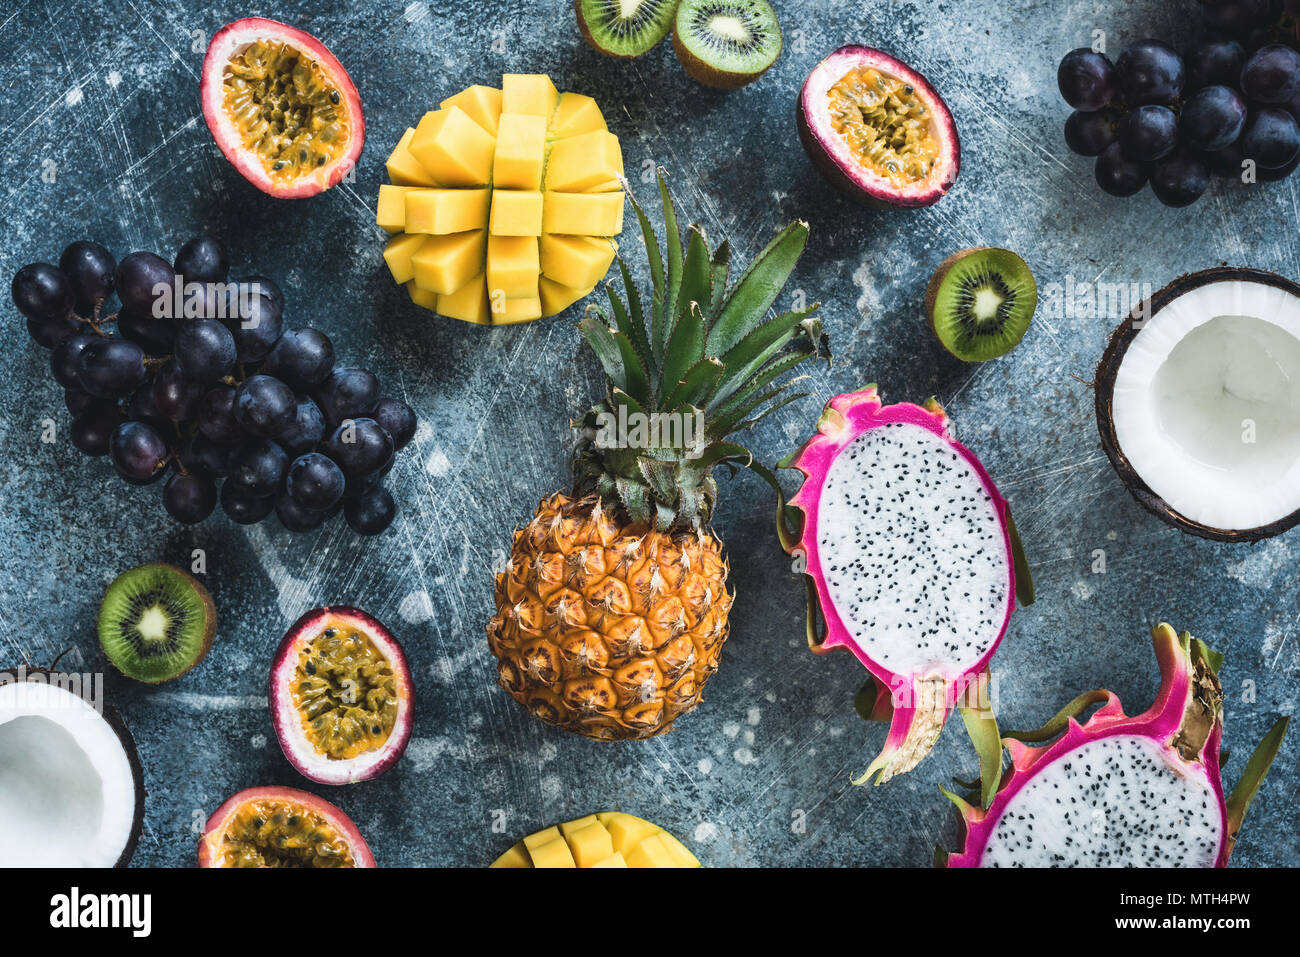 Tropical fruits, exotic fruits on concrete background. Fruit flat lay. Dragonfruit, passionfruit, coconut, mango, kiwi and grapes. Fresh raw fruit bac - Stock Image